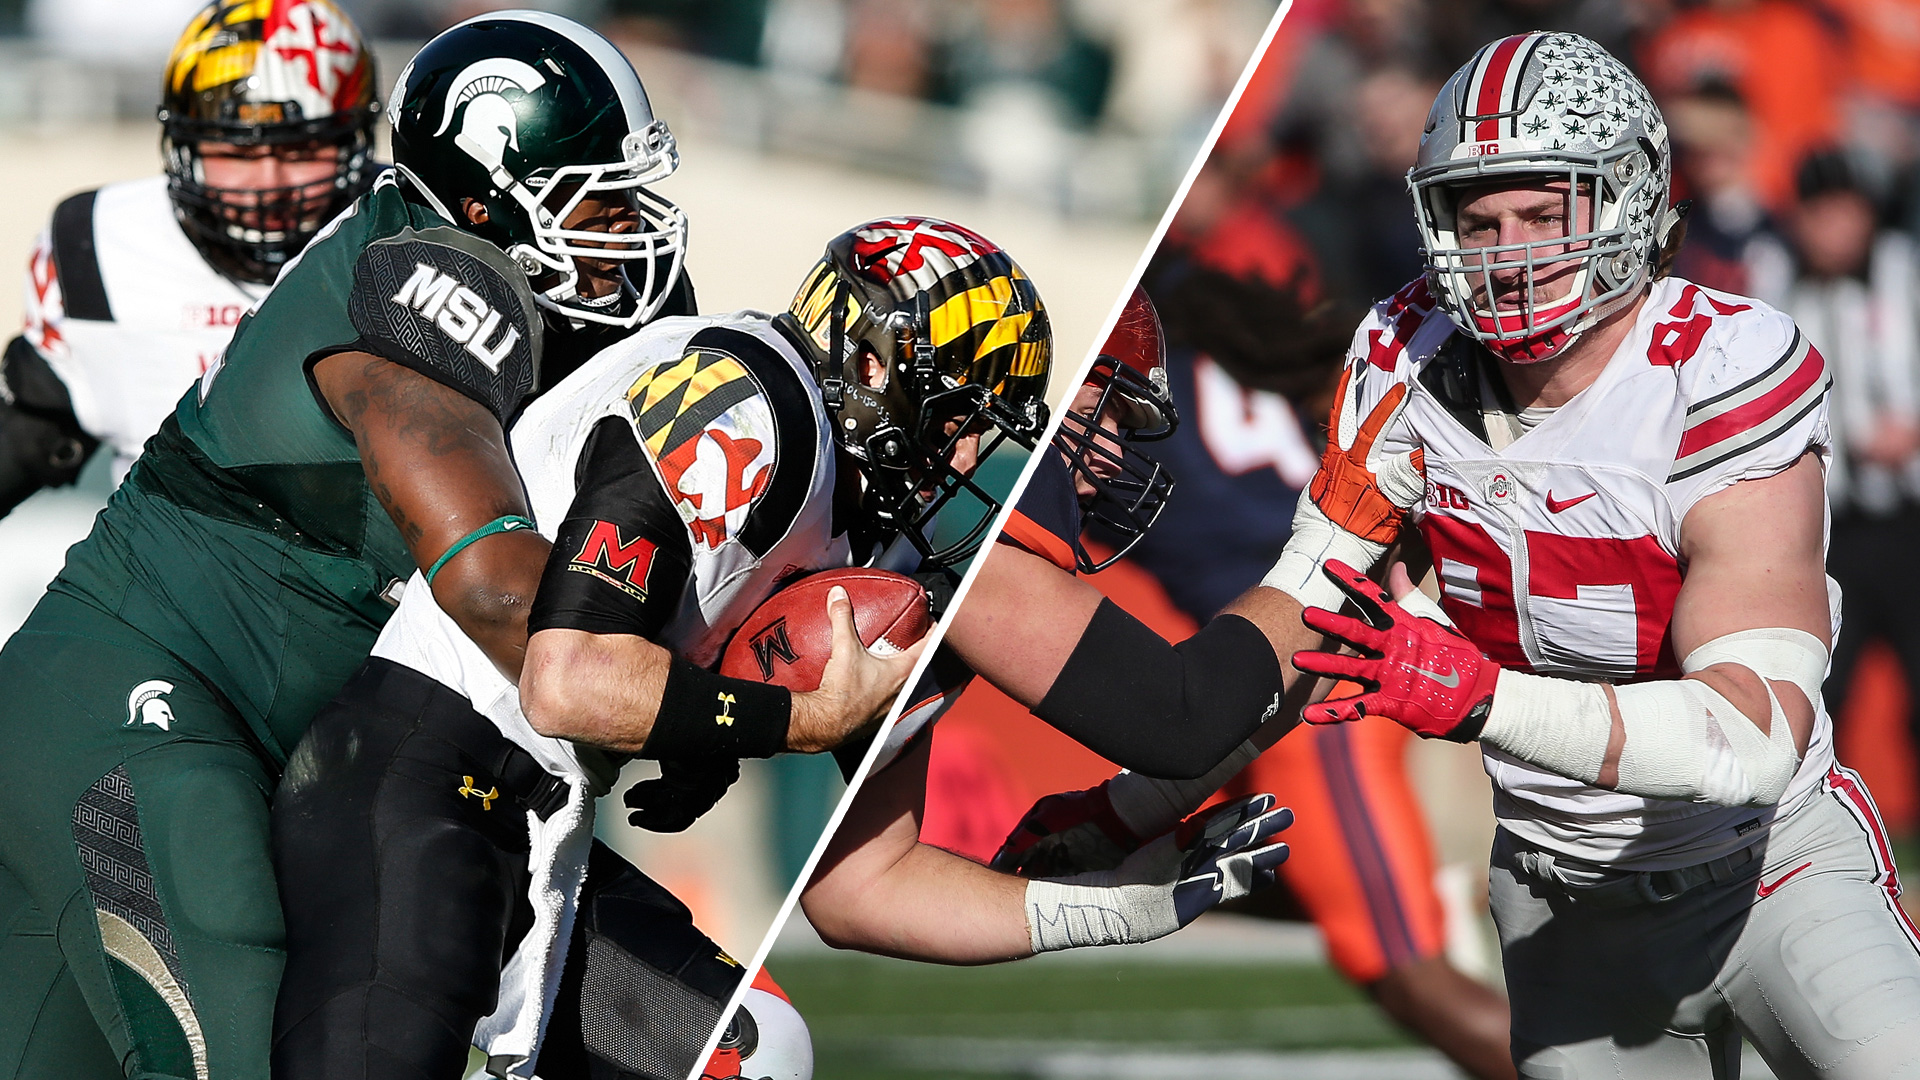 Michigan State at Ohio State betting lines and pick – Big point spread tempts Sparty bettors